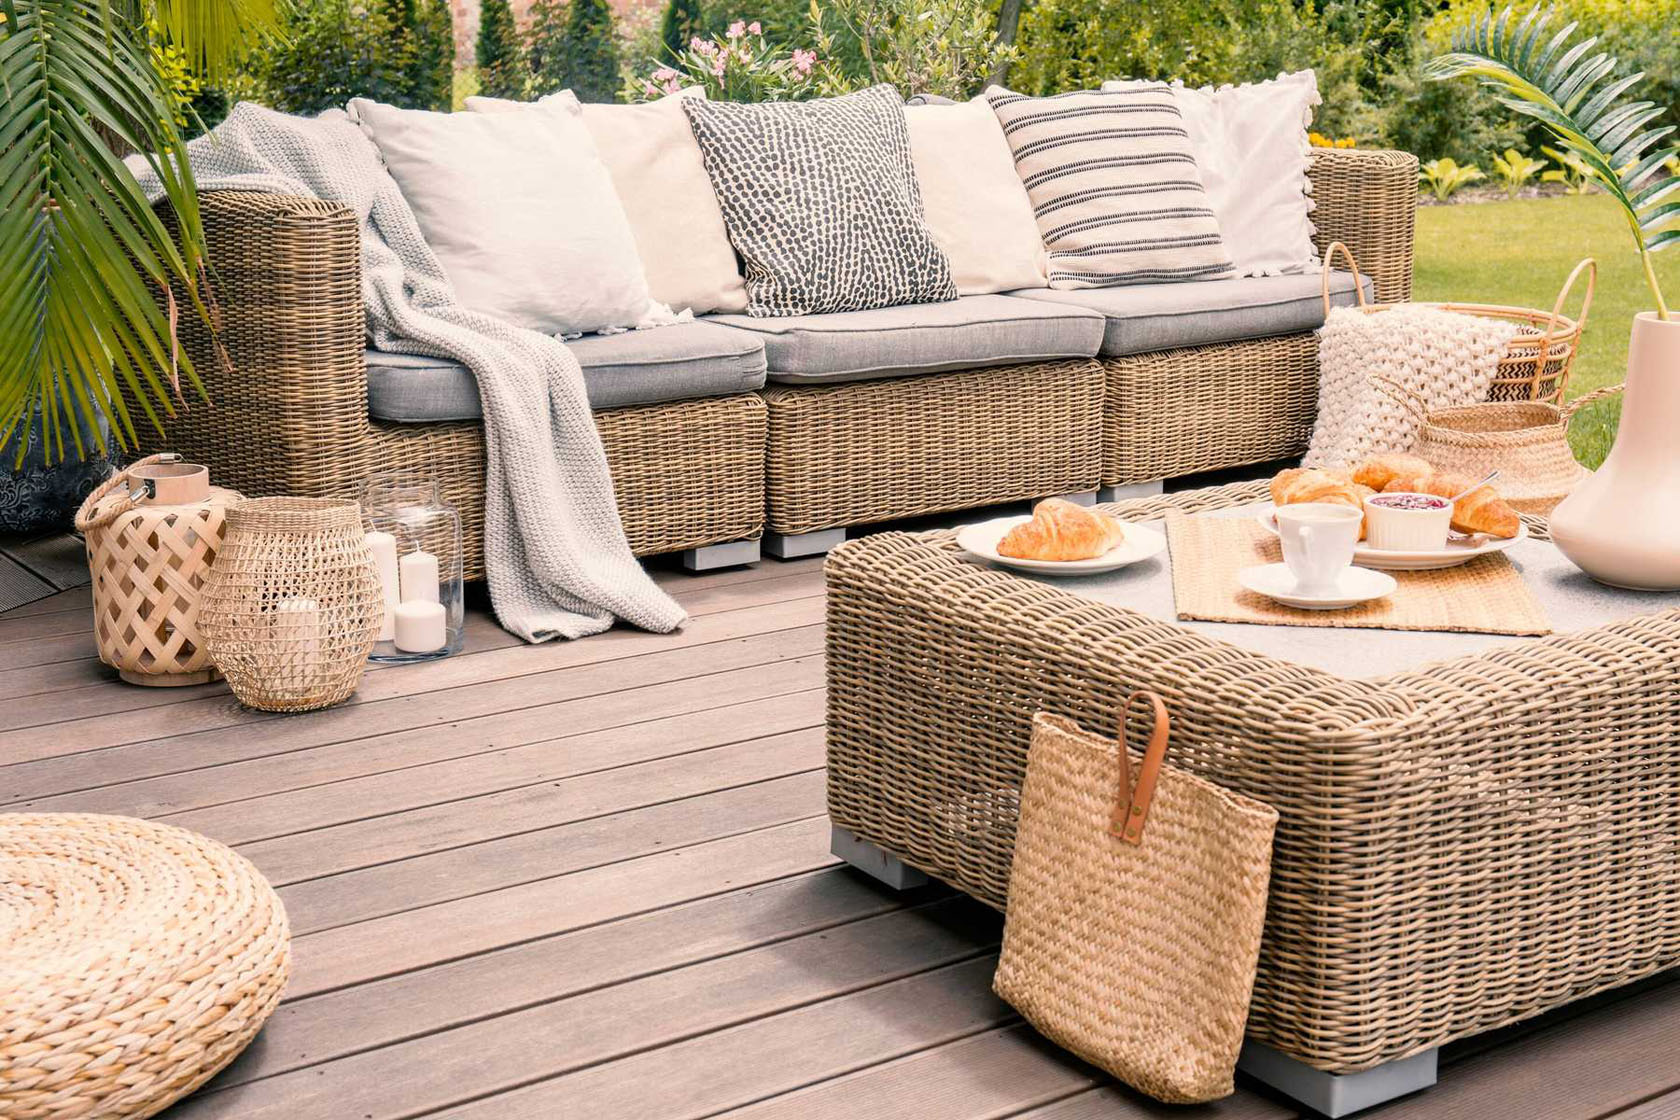 Wicker Furniture Cleaning Tips